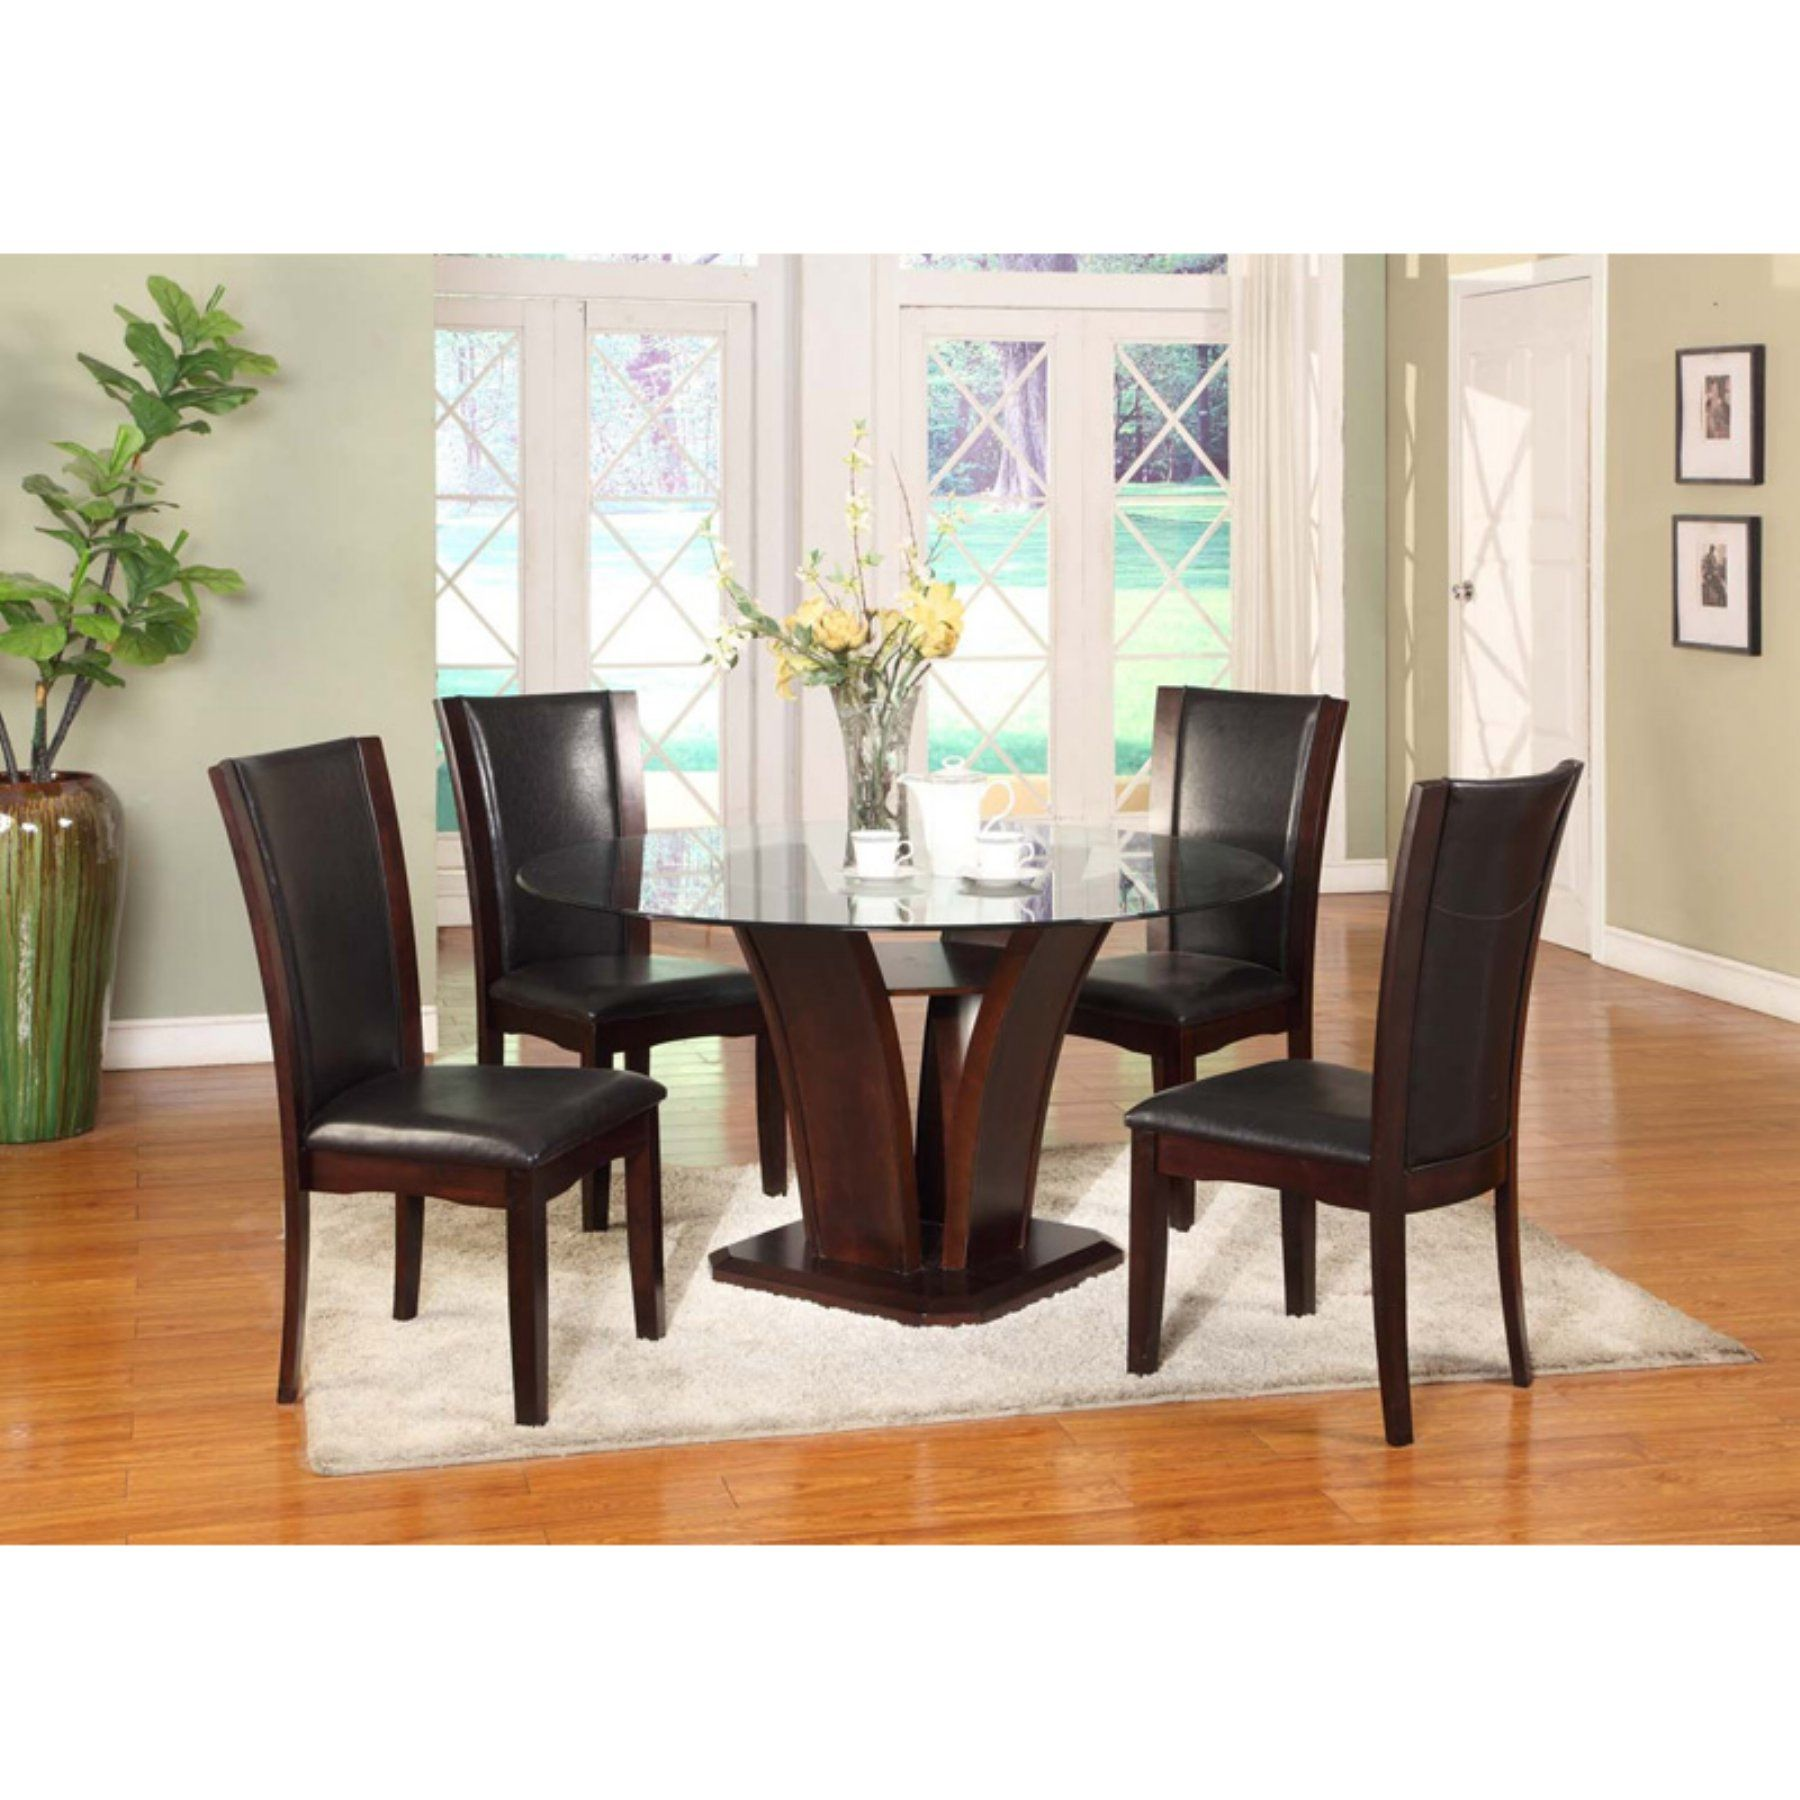 Roundhill Furniture Kecco 5 Piece Round Faux Leather Dining Table